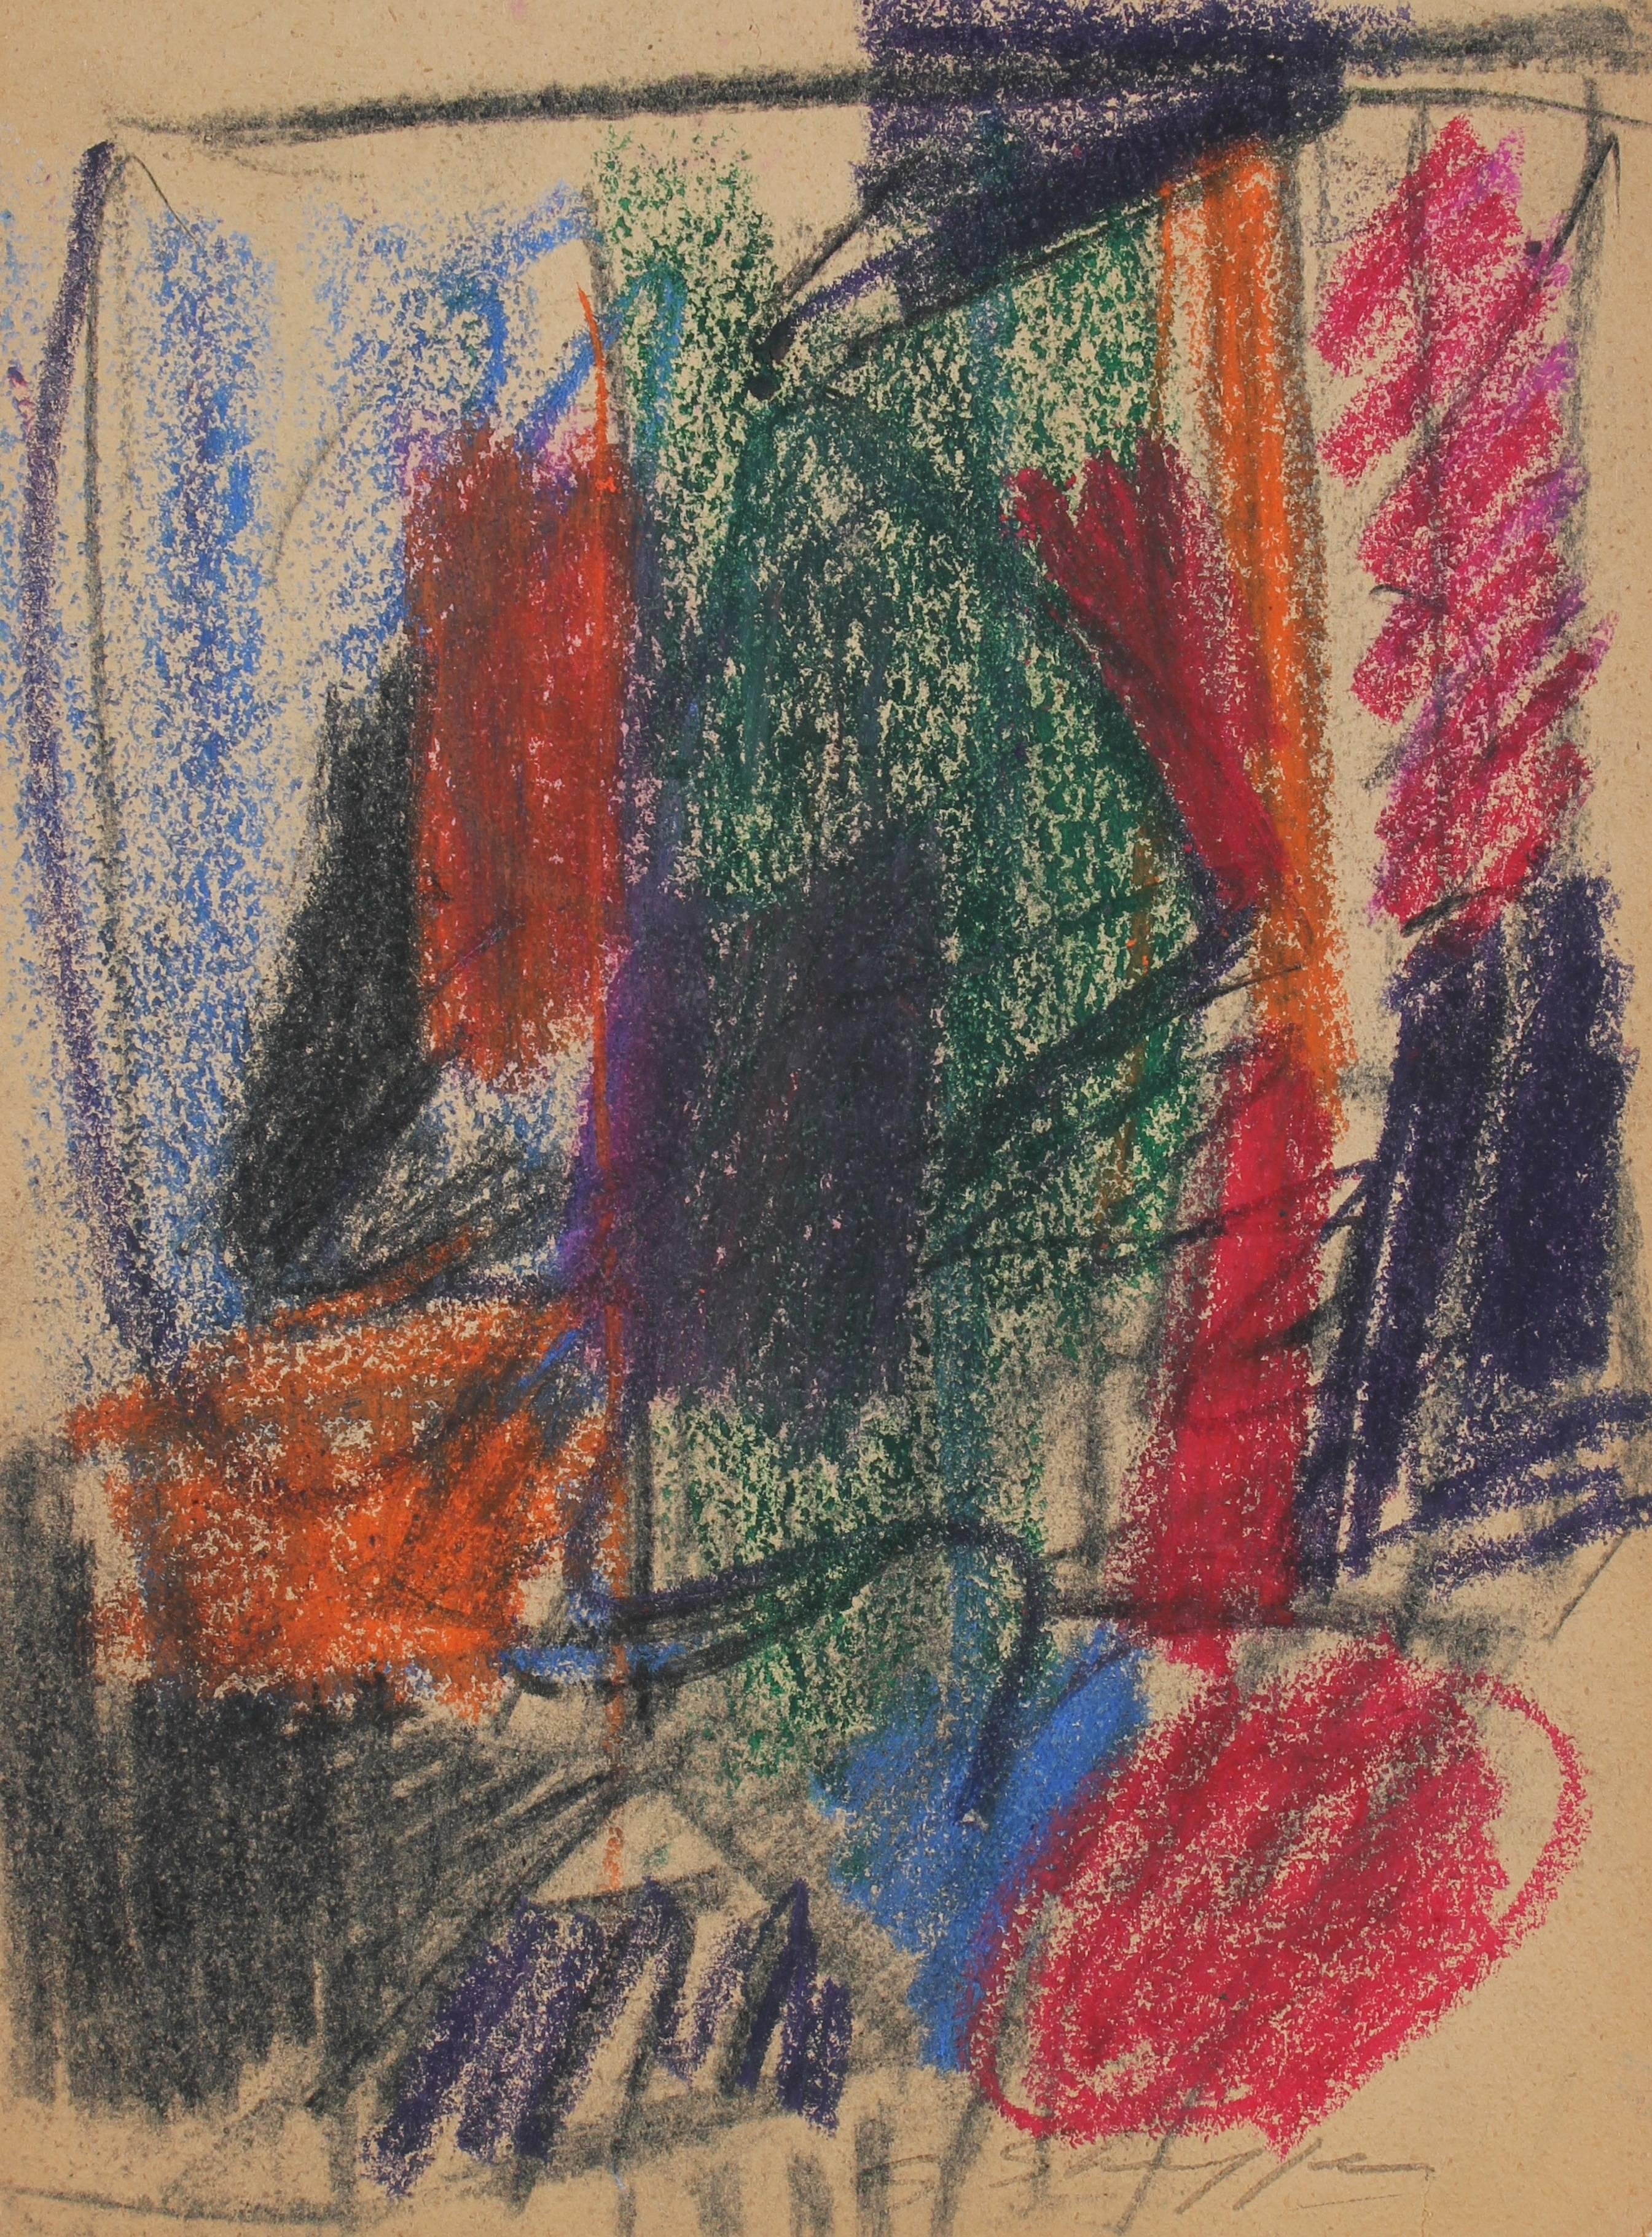 Abstract Expressionist Study in Pastel, 1958